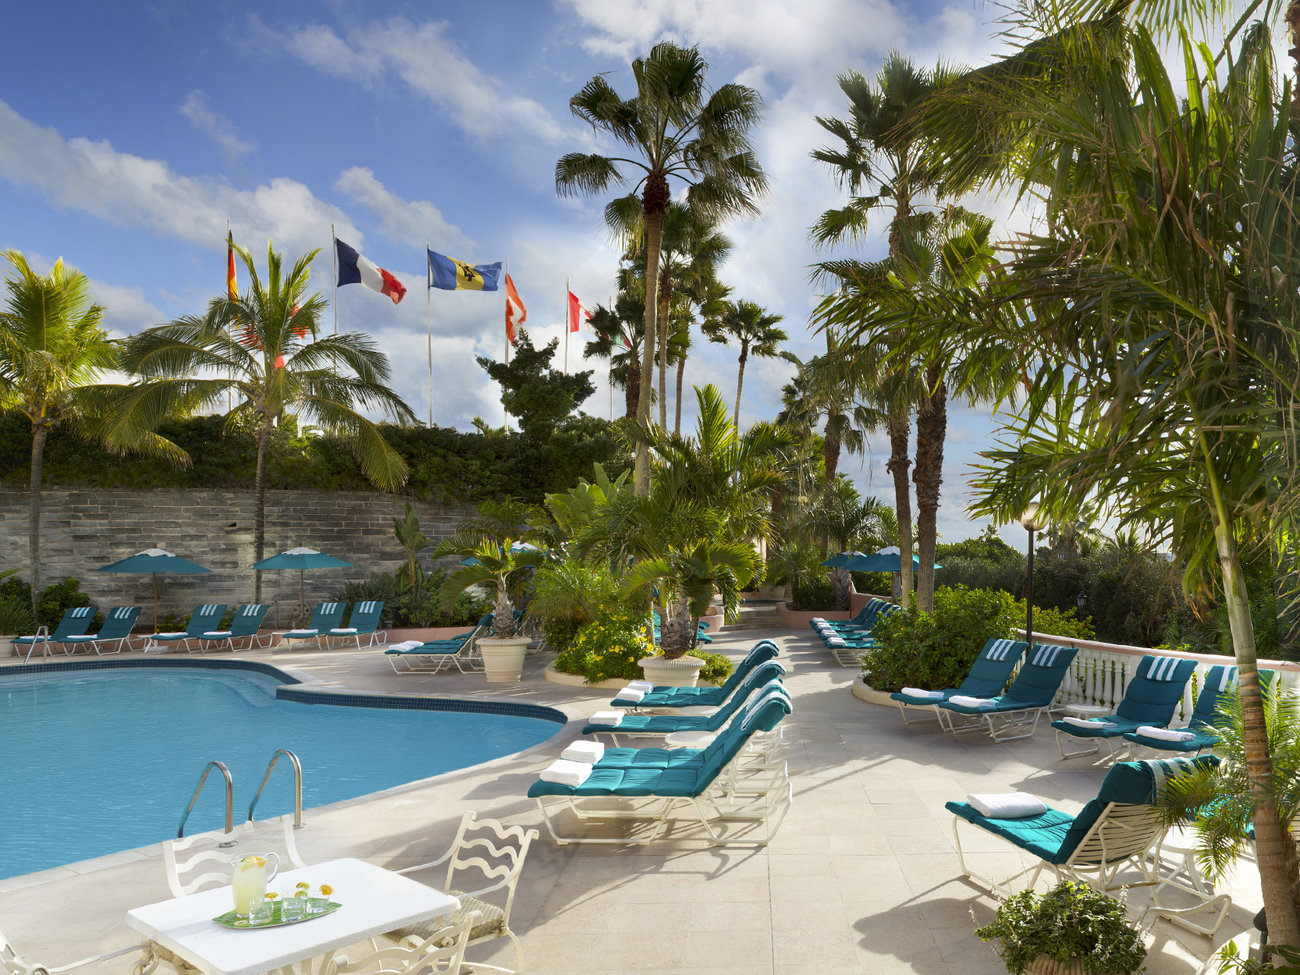 Fairmont Southampton Resort Hotel in Bermuda